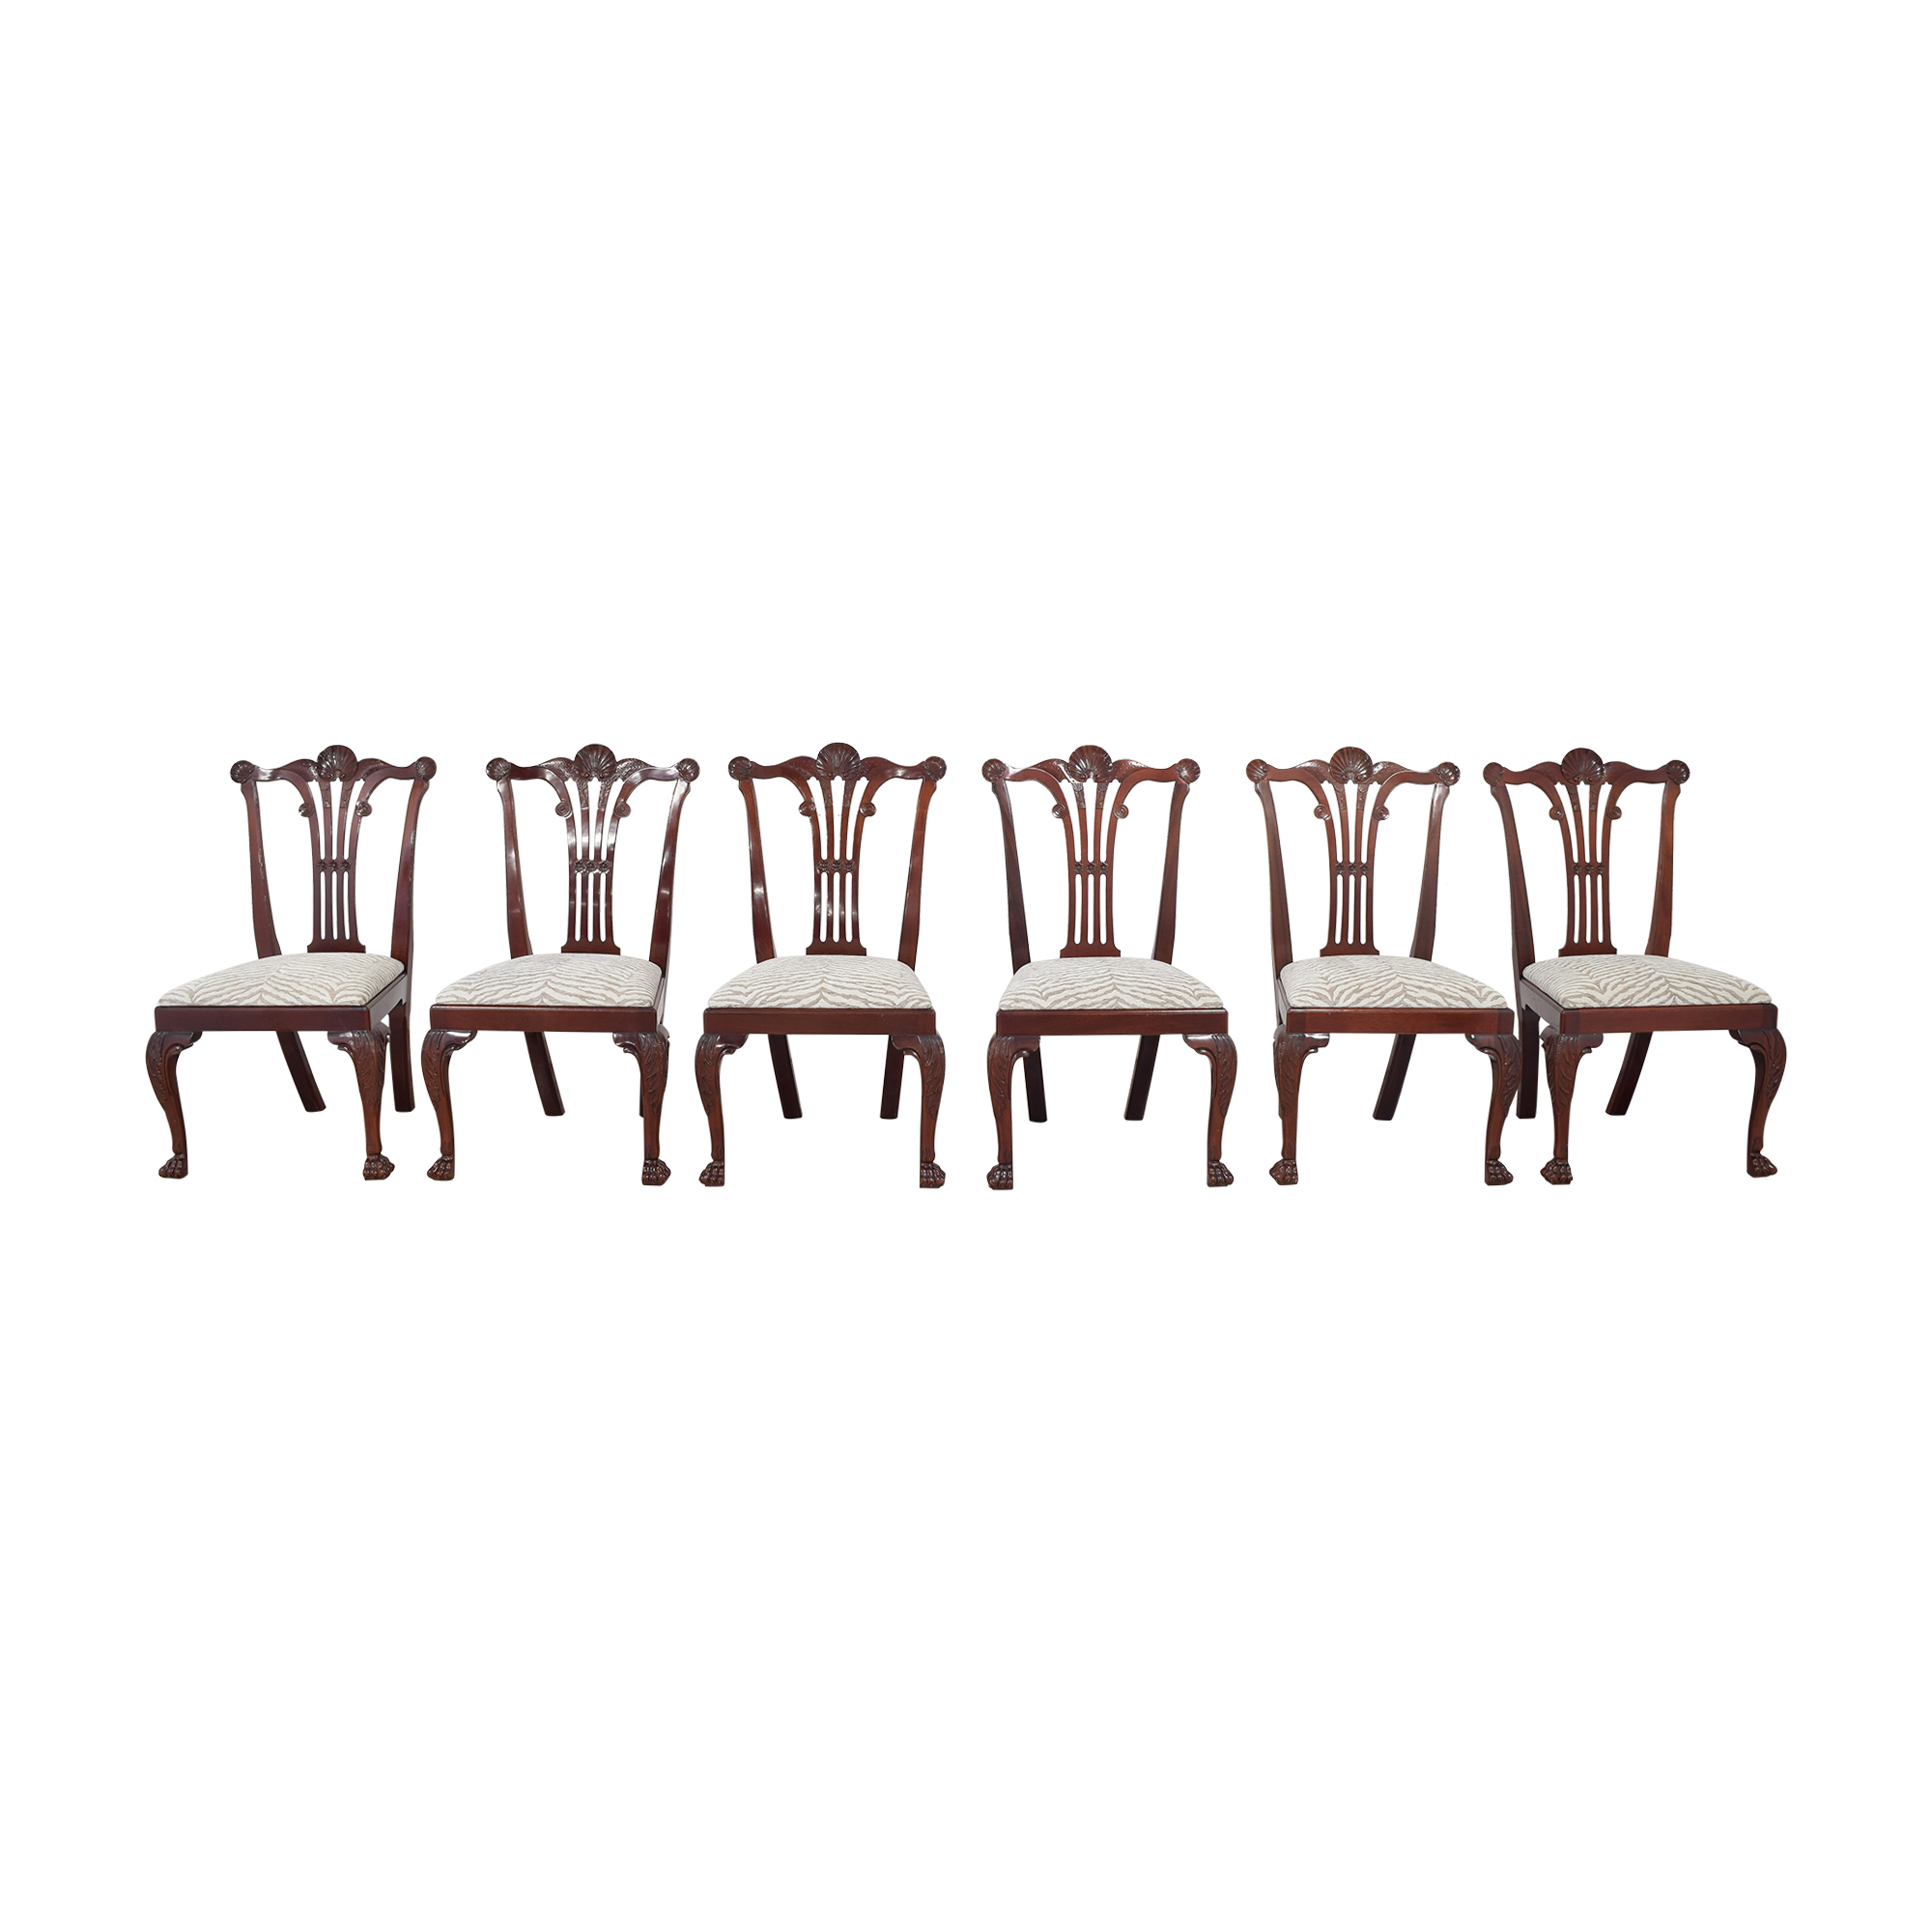 Kindel Kindel Chippendale-Style Dining Side Chairs price